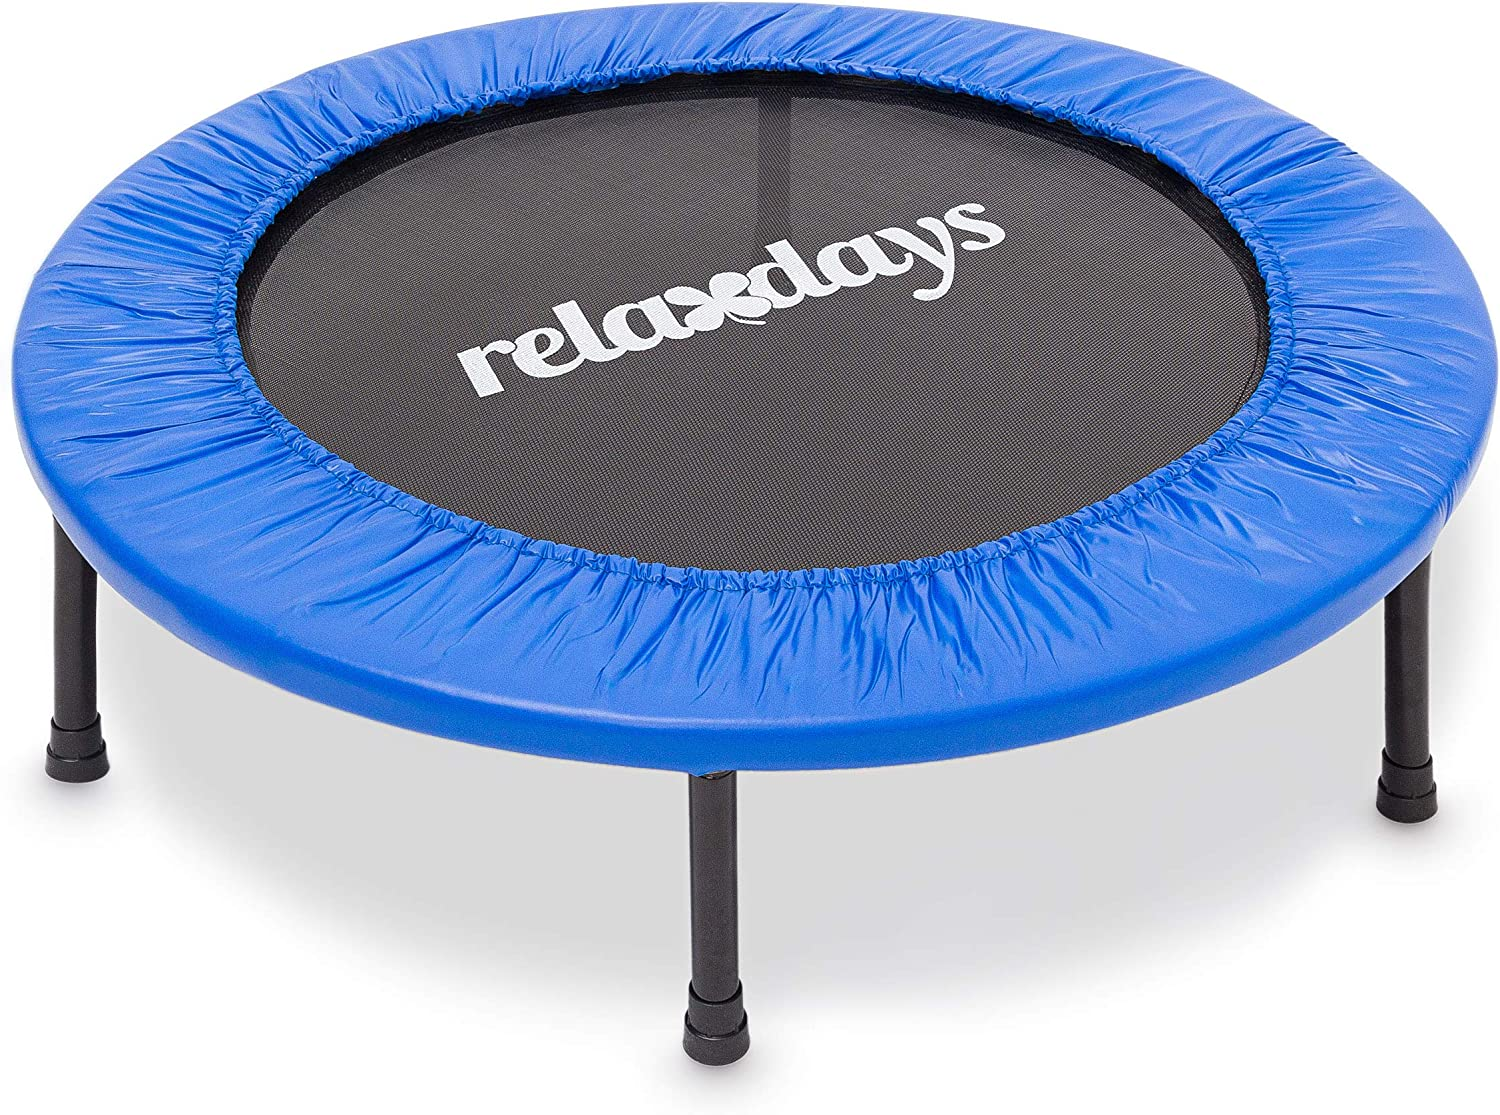 Blue Endurance Training and Fitness Relaxdays Fitness Trampoline Holds up to 100 kg 91 or 96 cm Diameter Aerobic Indoor Trampoline